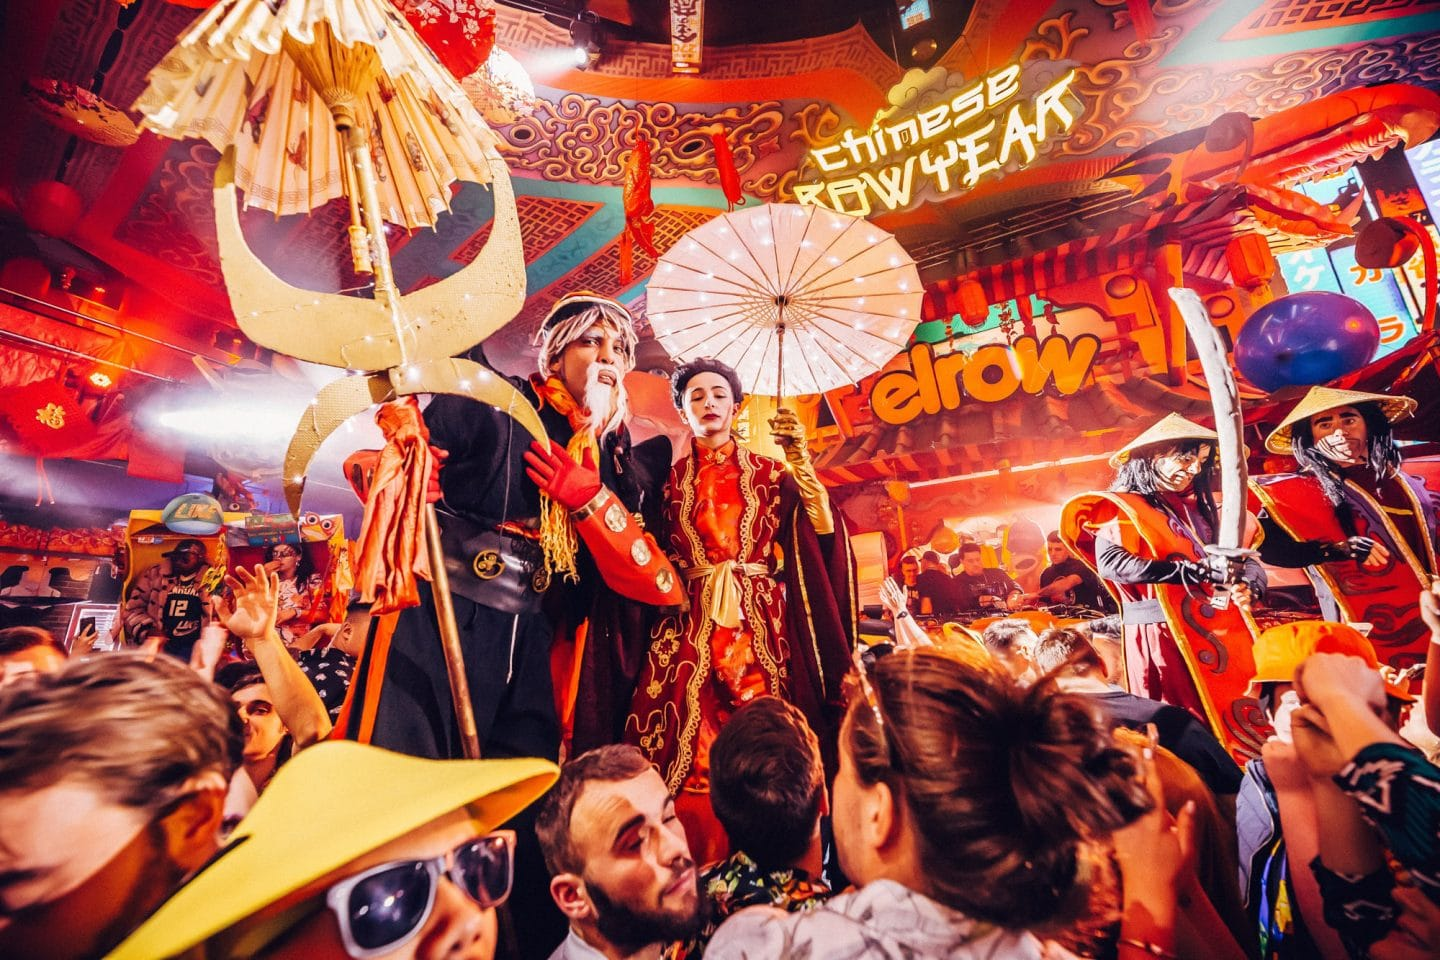 Elrow Chinese Row Year